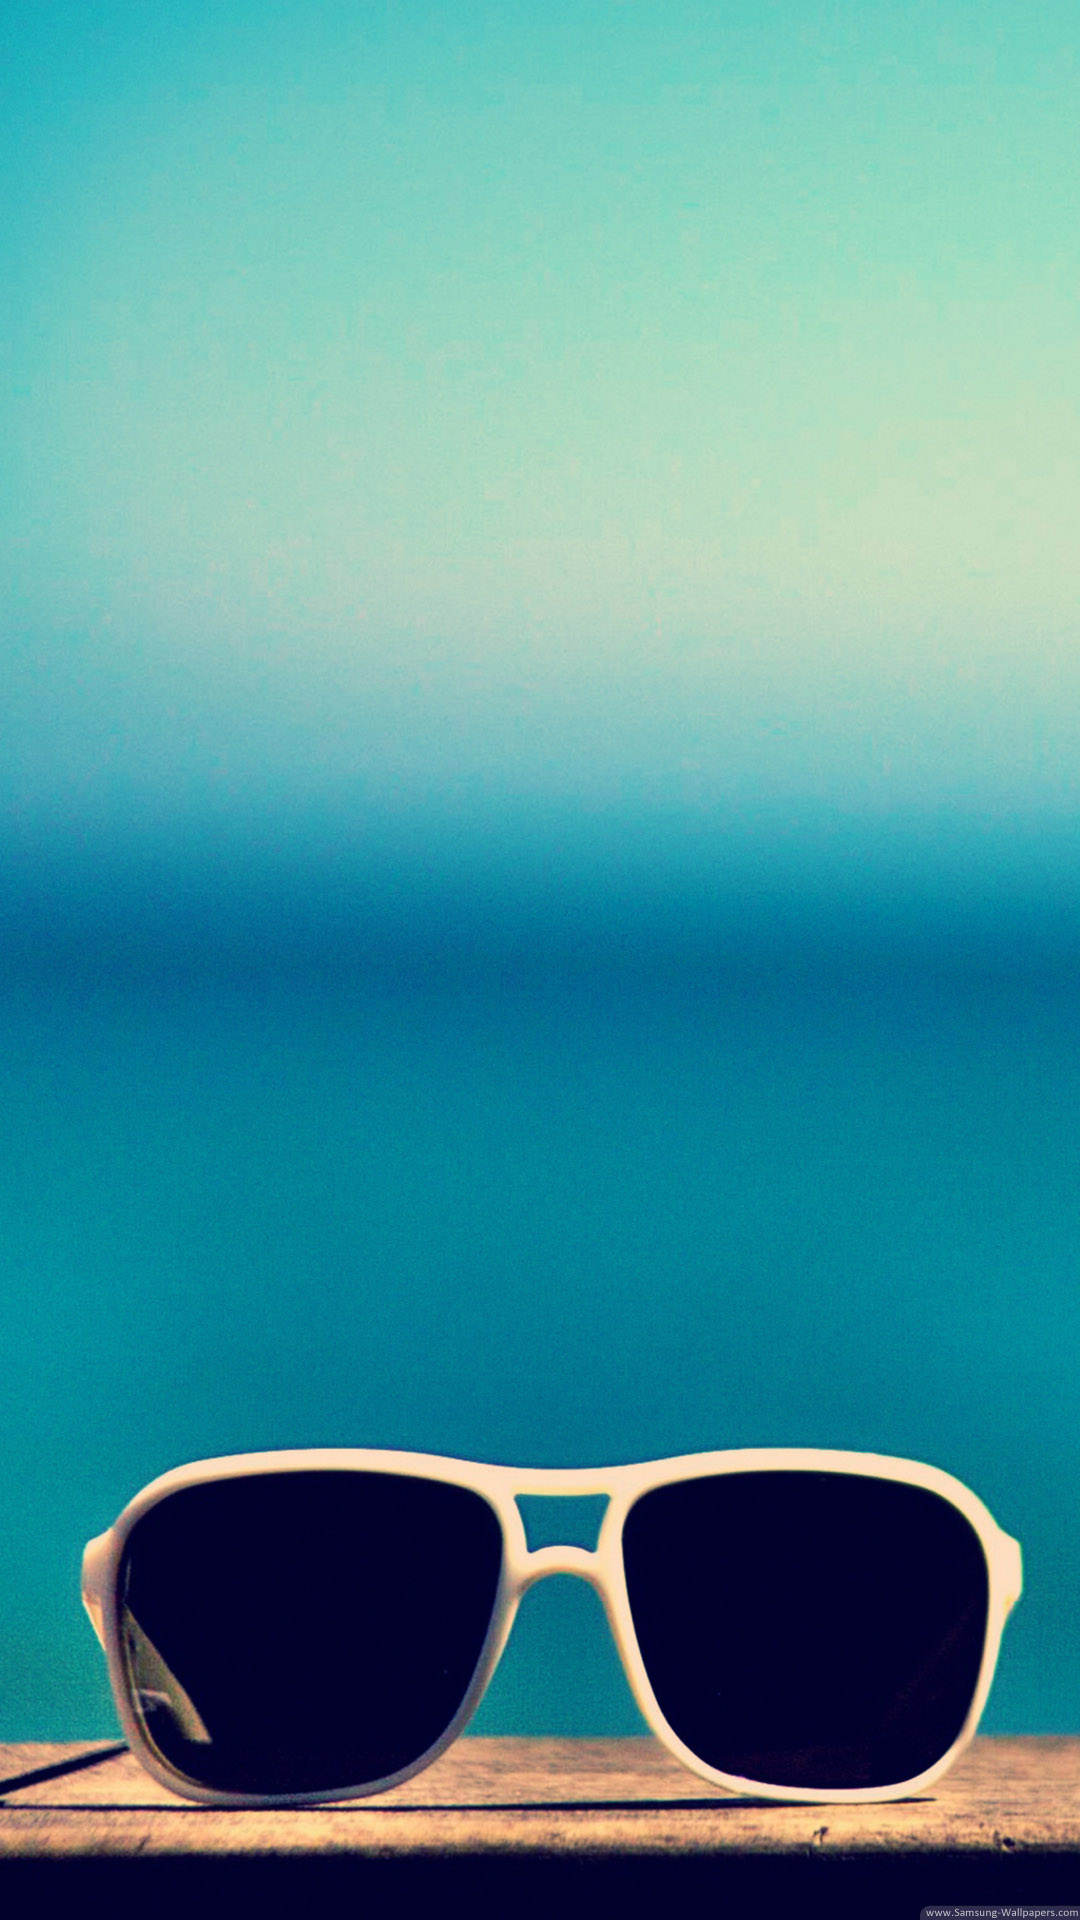 Cool Hipster Sunglasses iPhone 6 Plus HD Wallpaper Cool Iphone 1080x1920